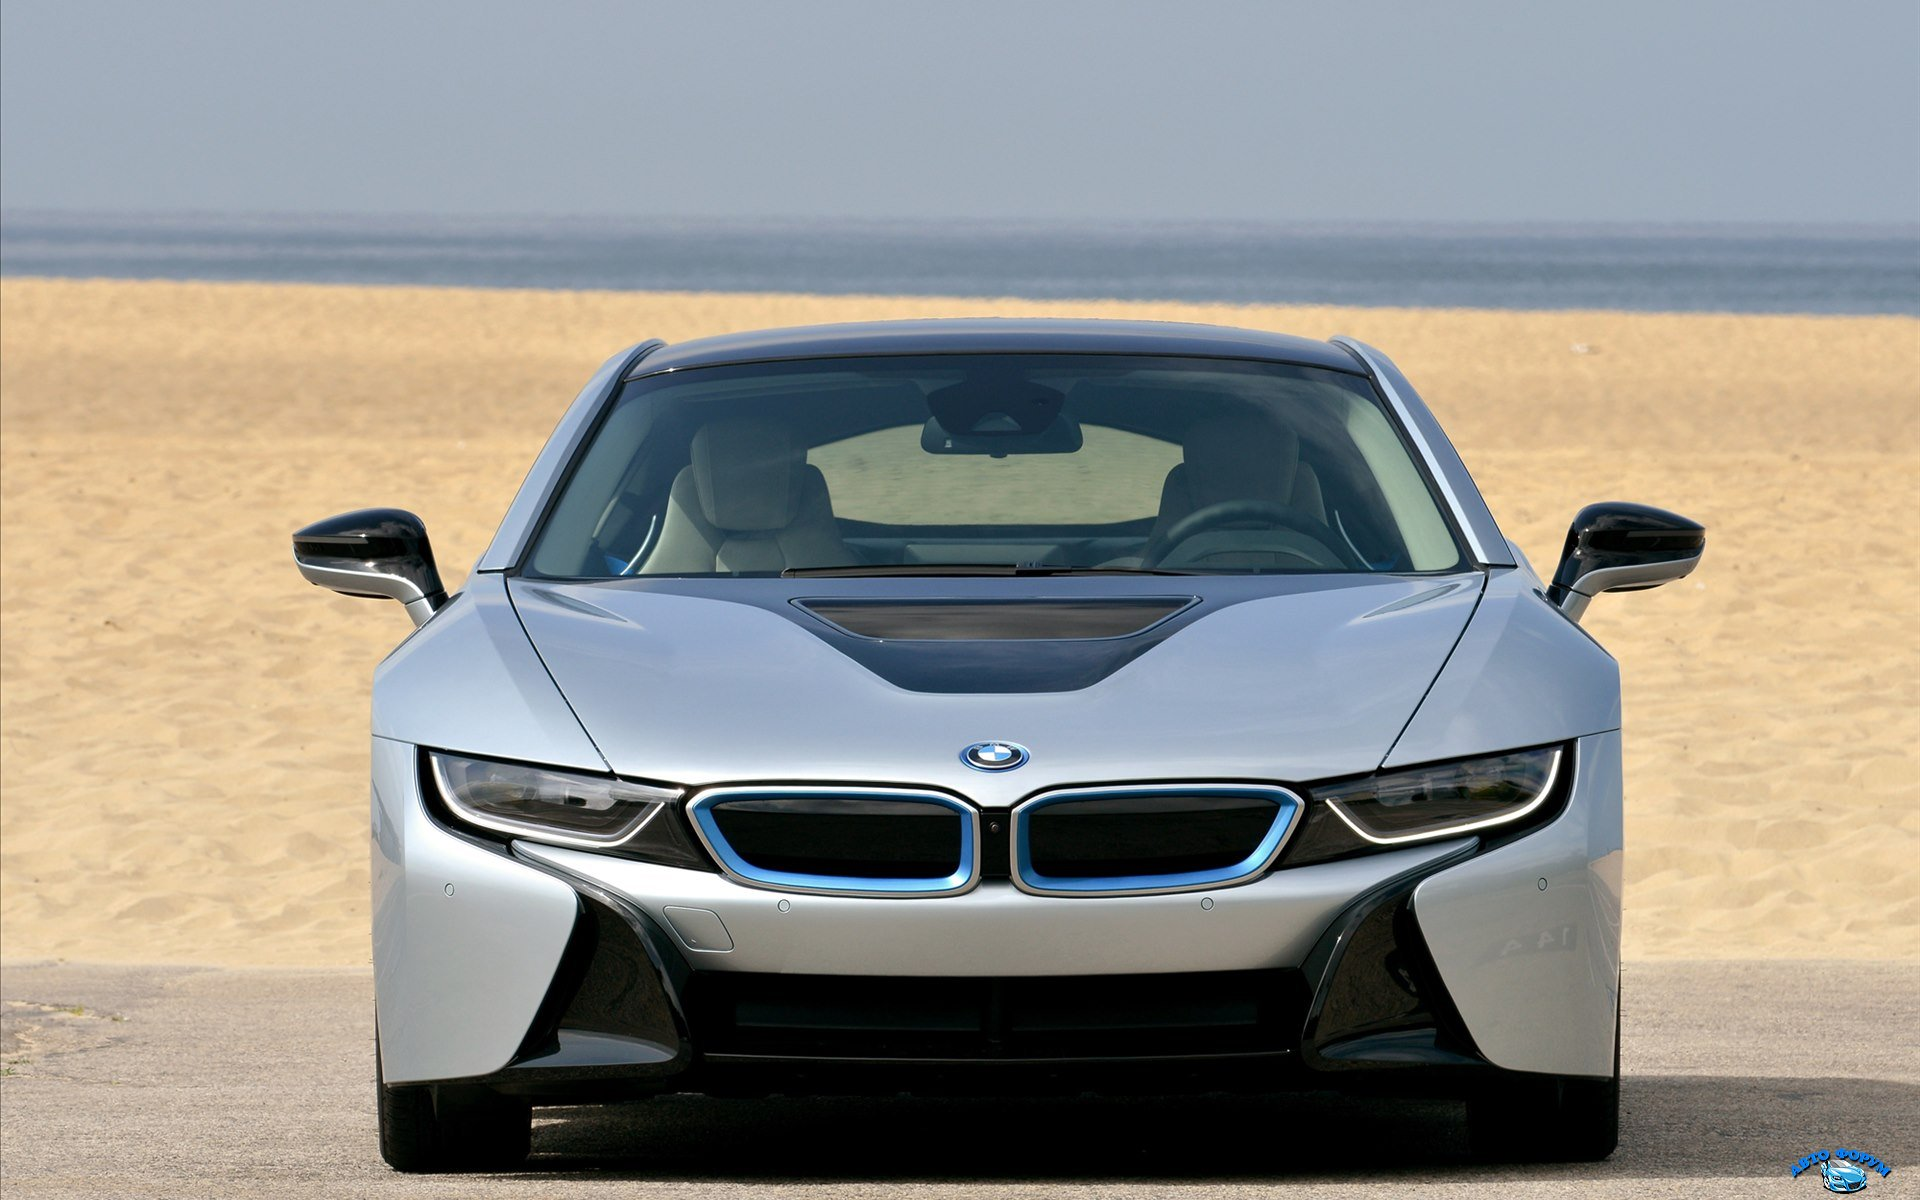 BMW-i8-2015-widescreen-86.jpg